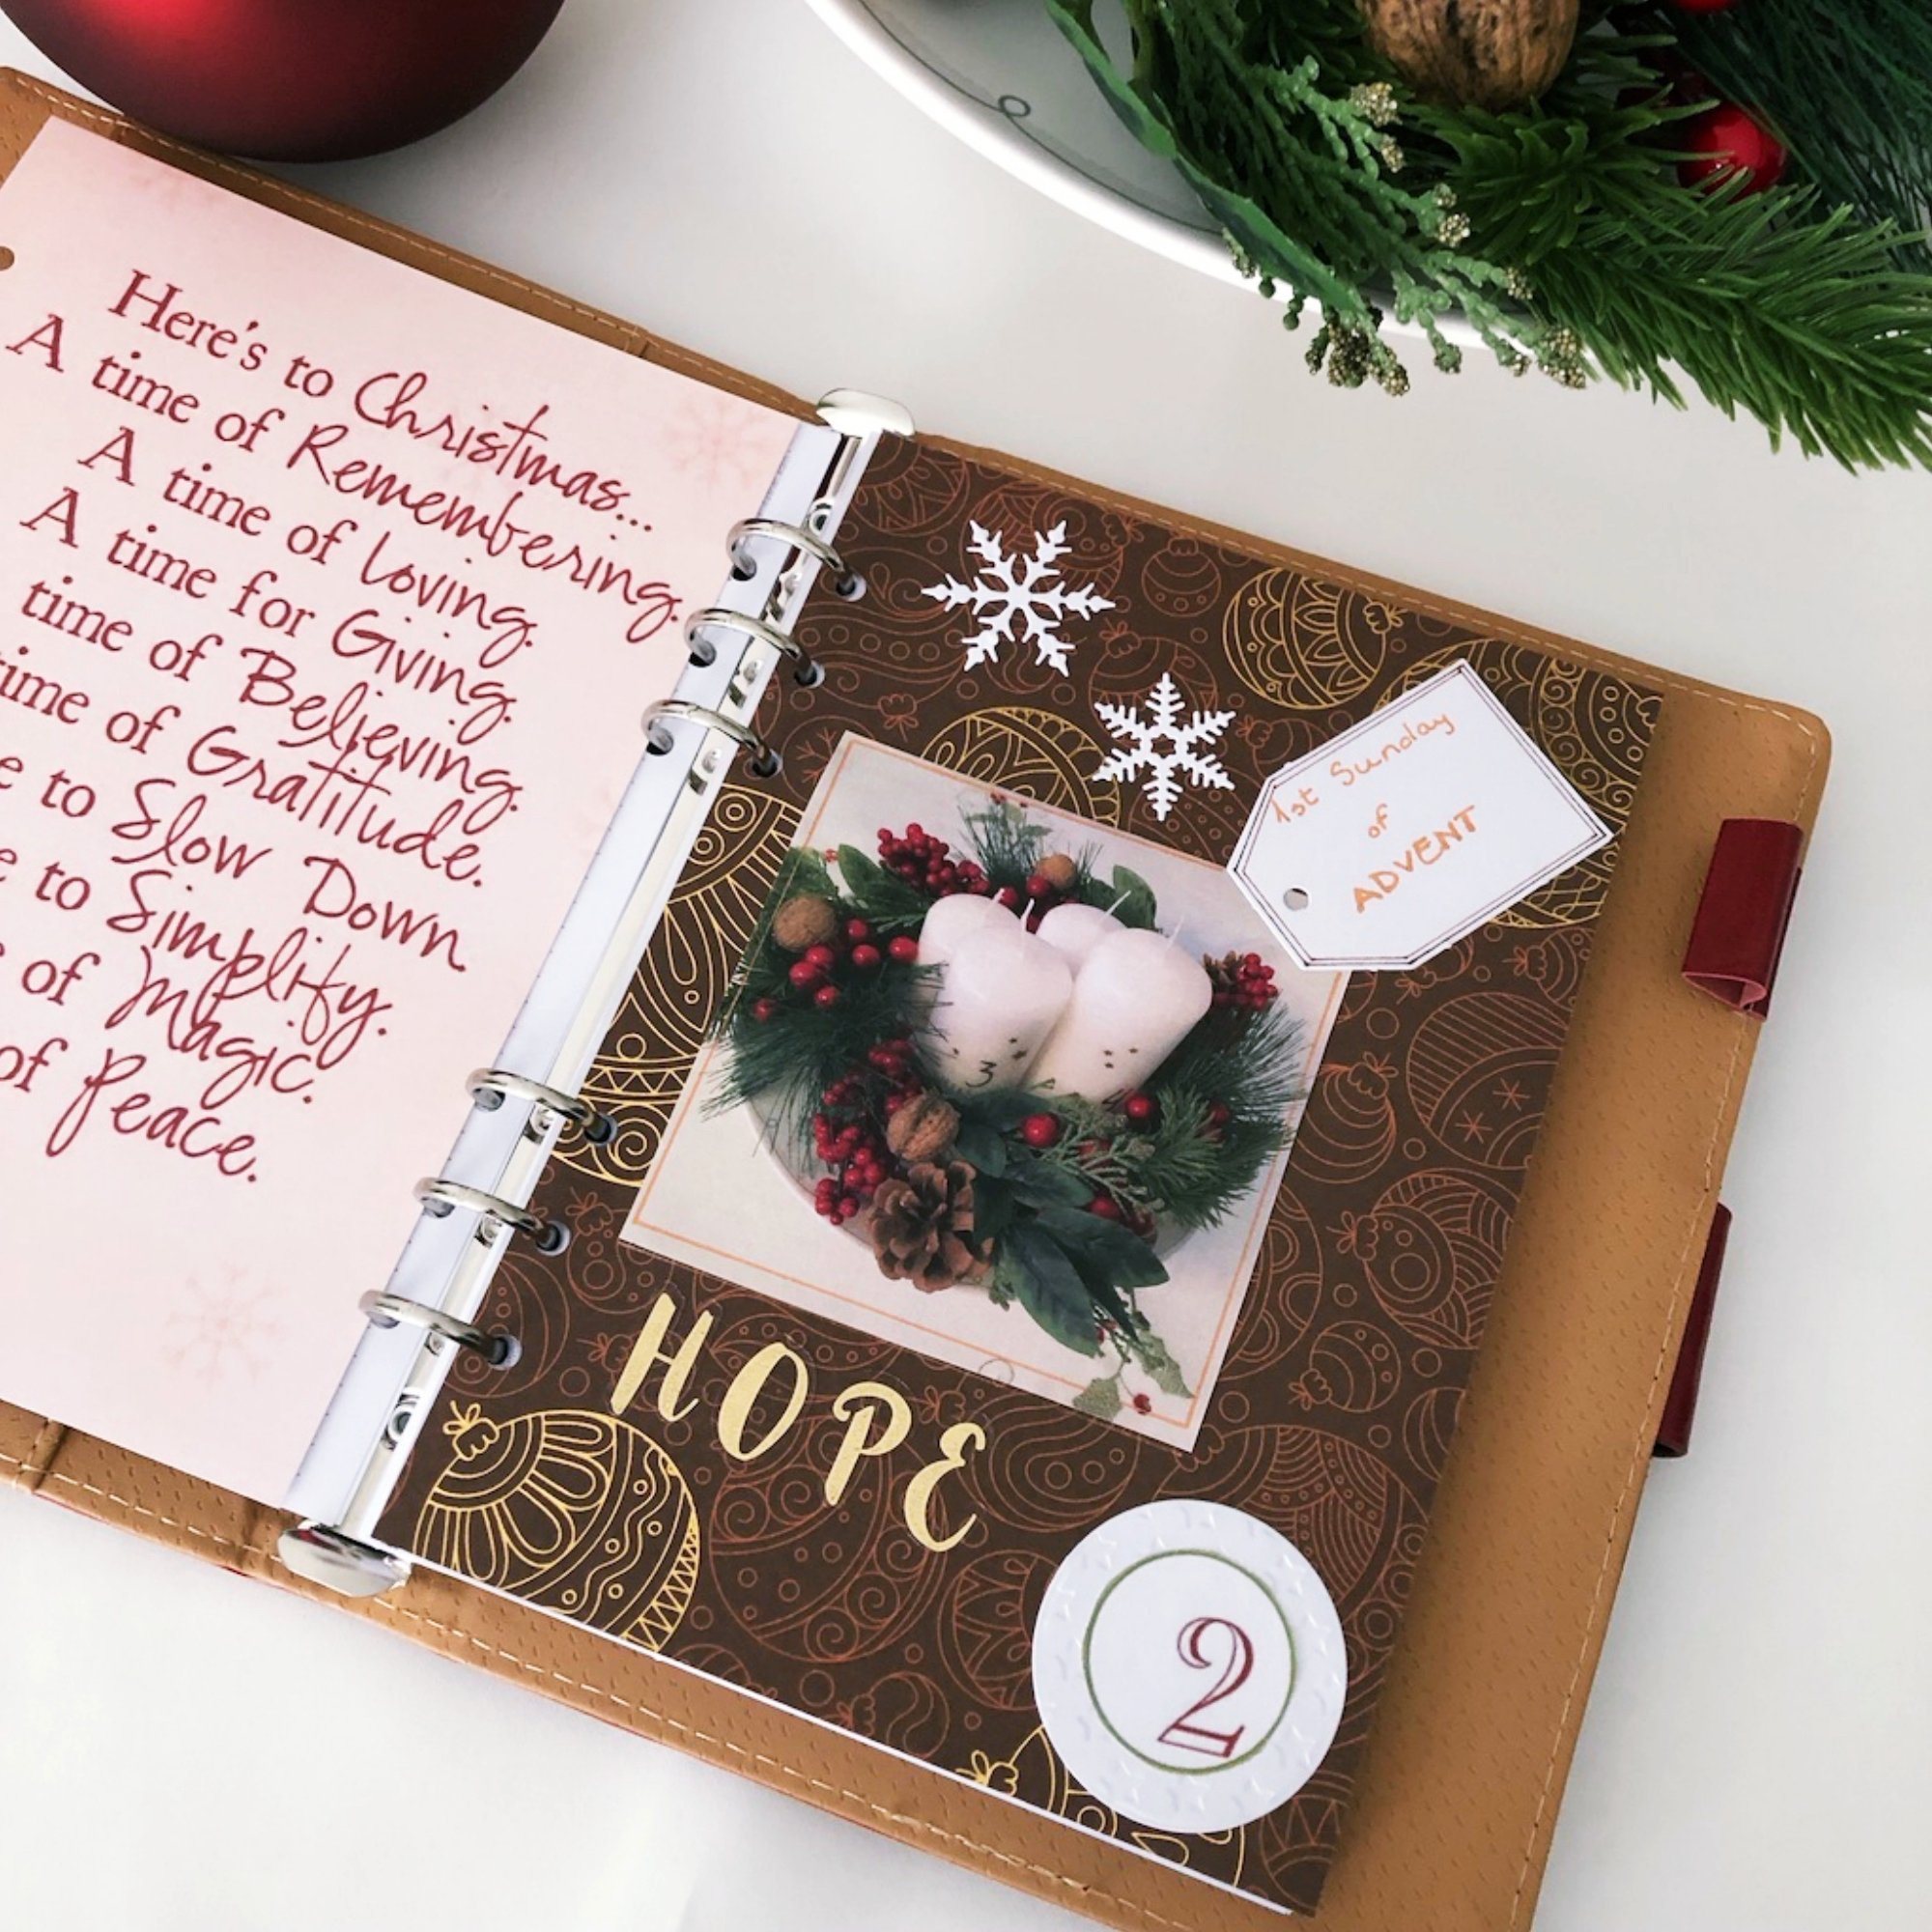 Creative journaling - December daily memories Day 2 - itstartswithacoffee.com #creativejournaling #journaling #daily